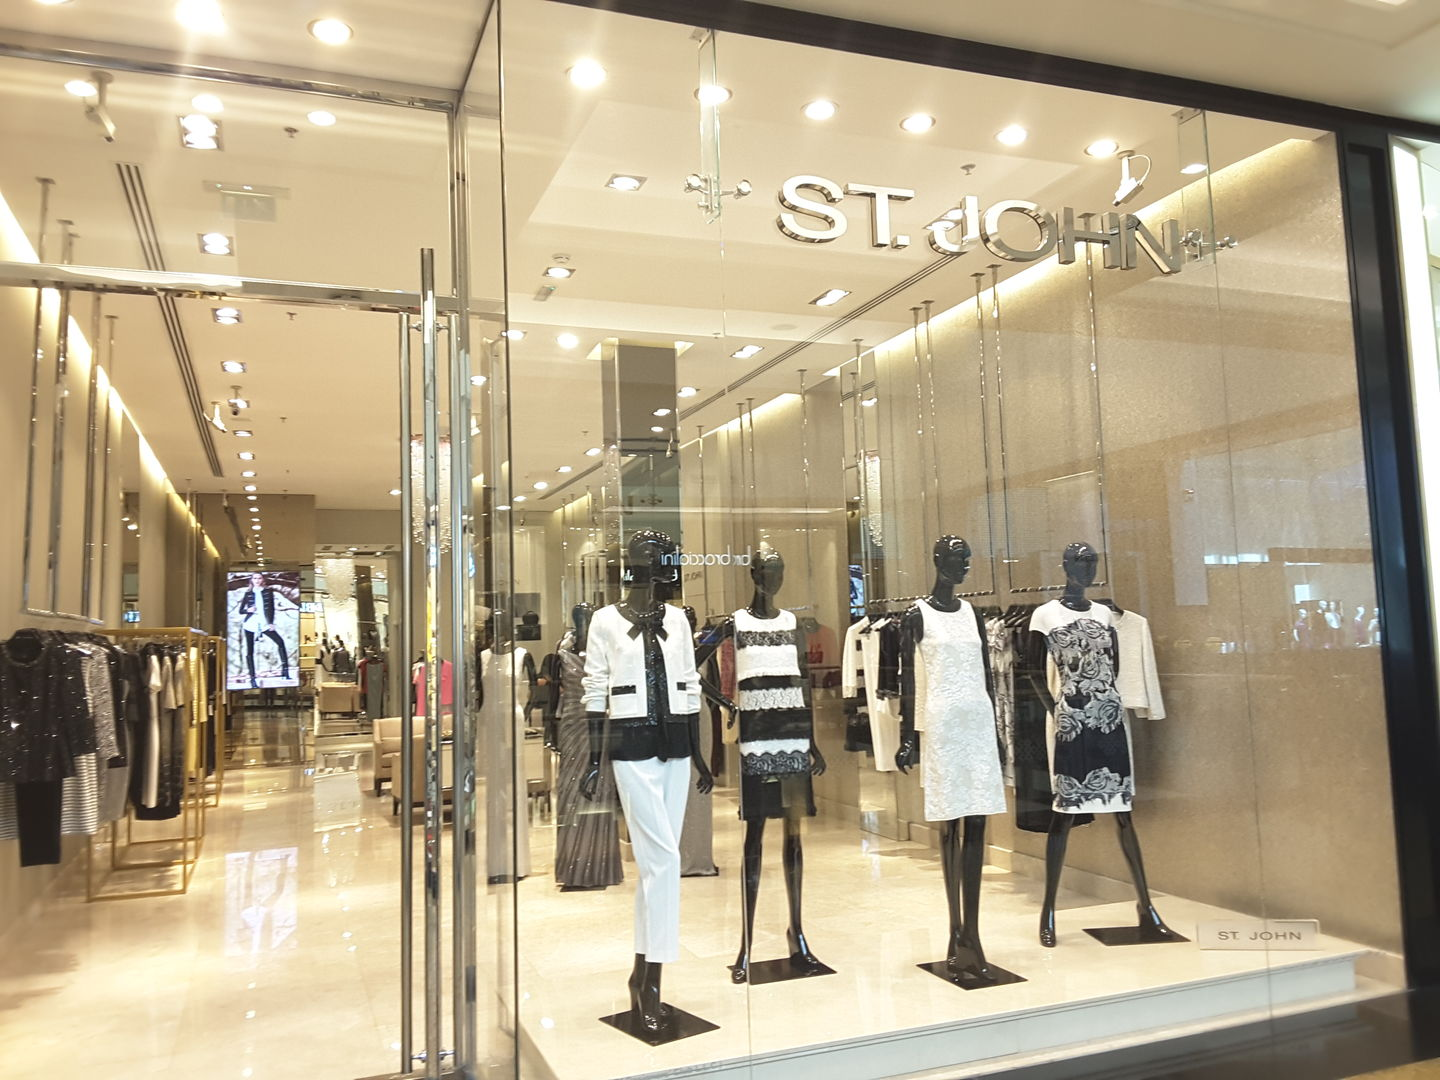 HiDubai-business-st-john-shopping-apparel-al-barsha-1-dubai-2